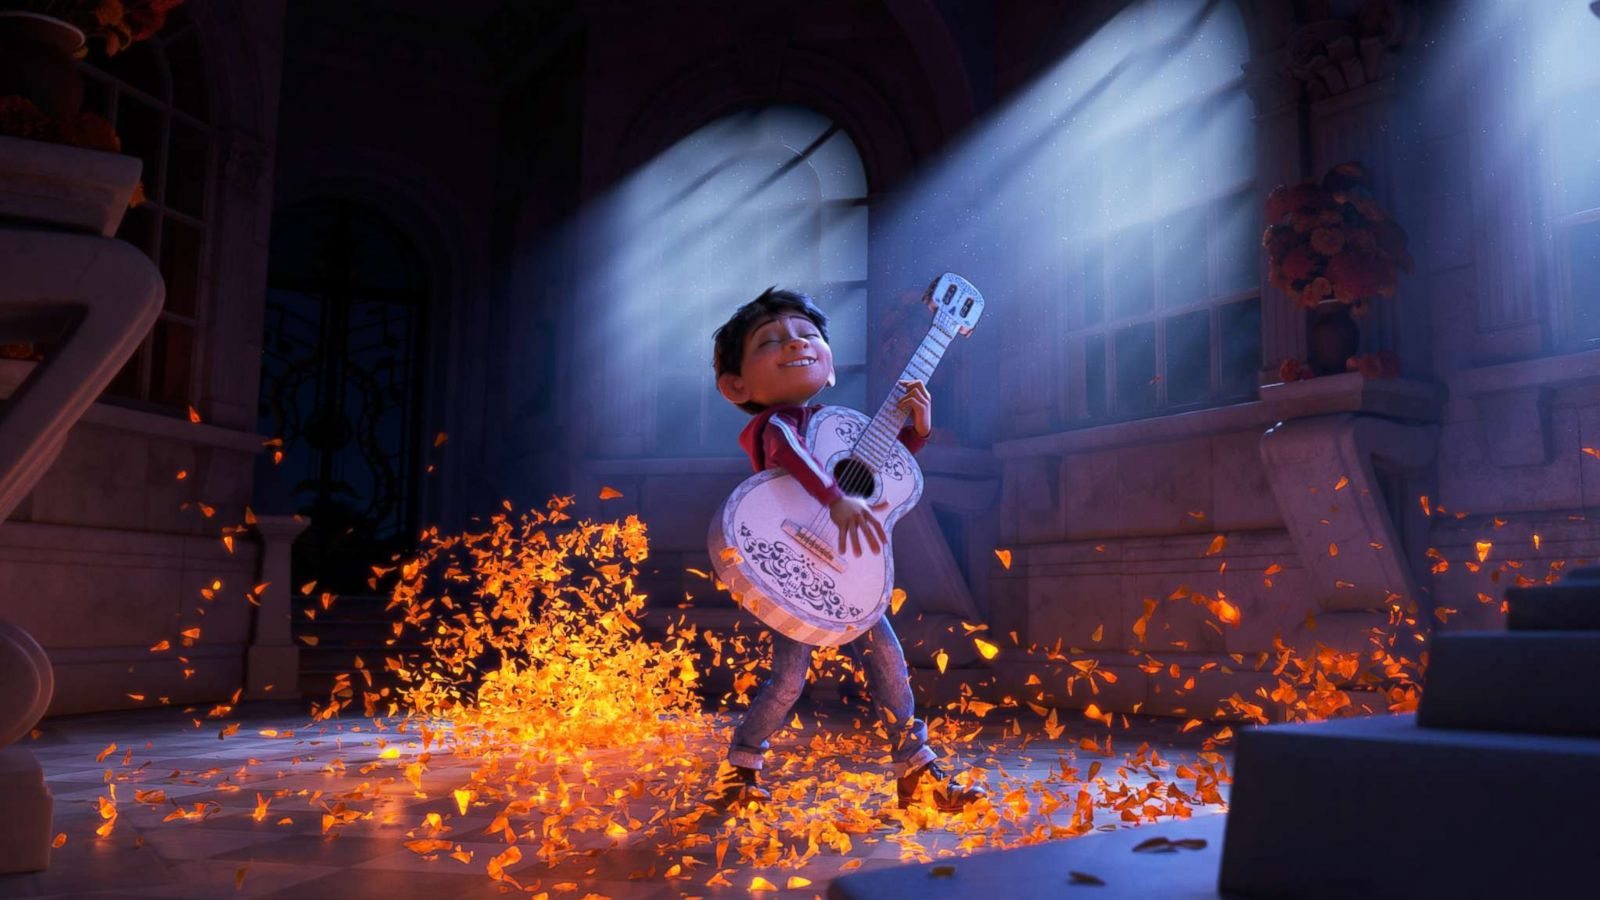 5 Things To Know About Disney Pixars Coco